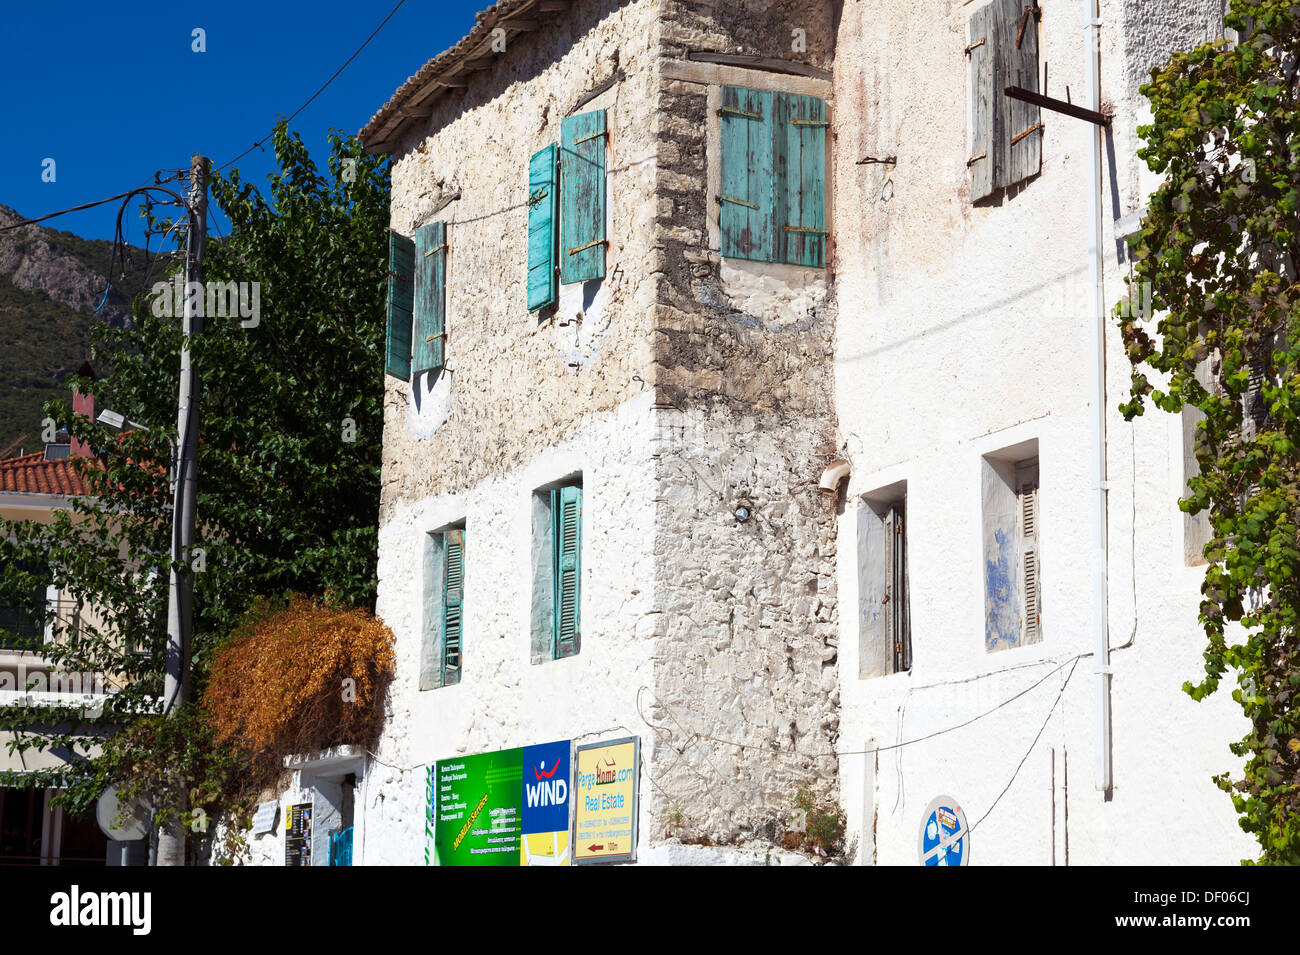 typical neglect of top of buildings in Greece run down derelict left to rot Parga town Greek - Stock Image